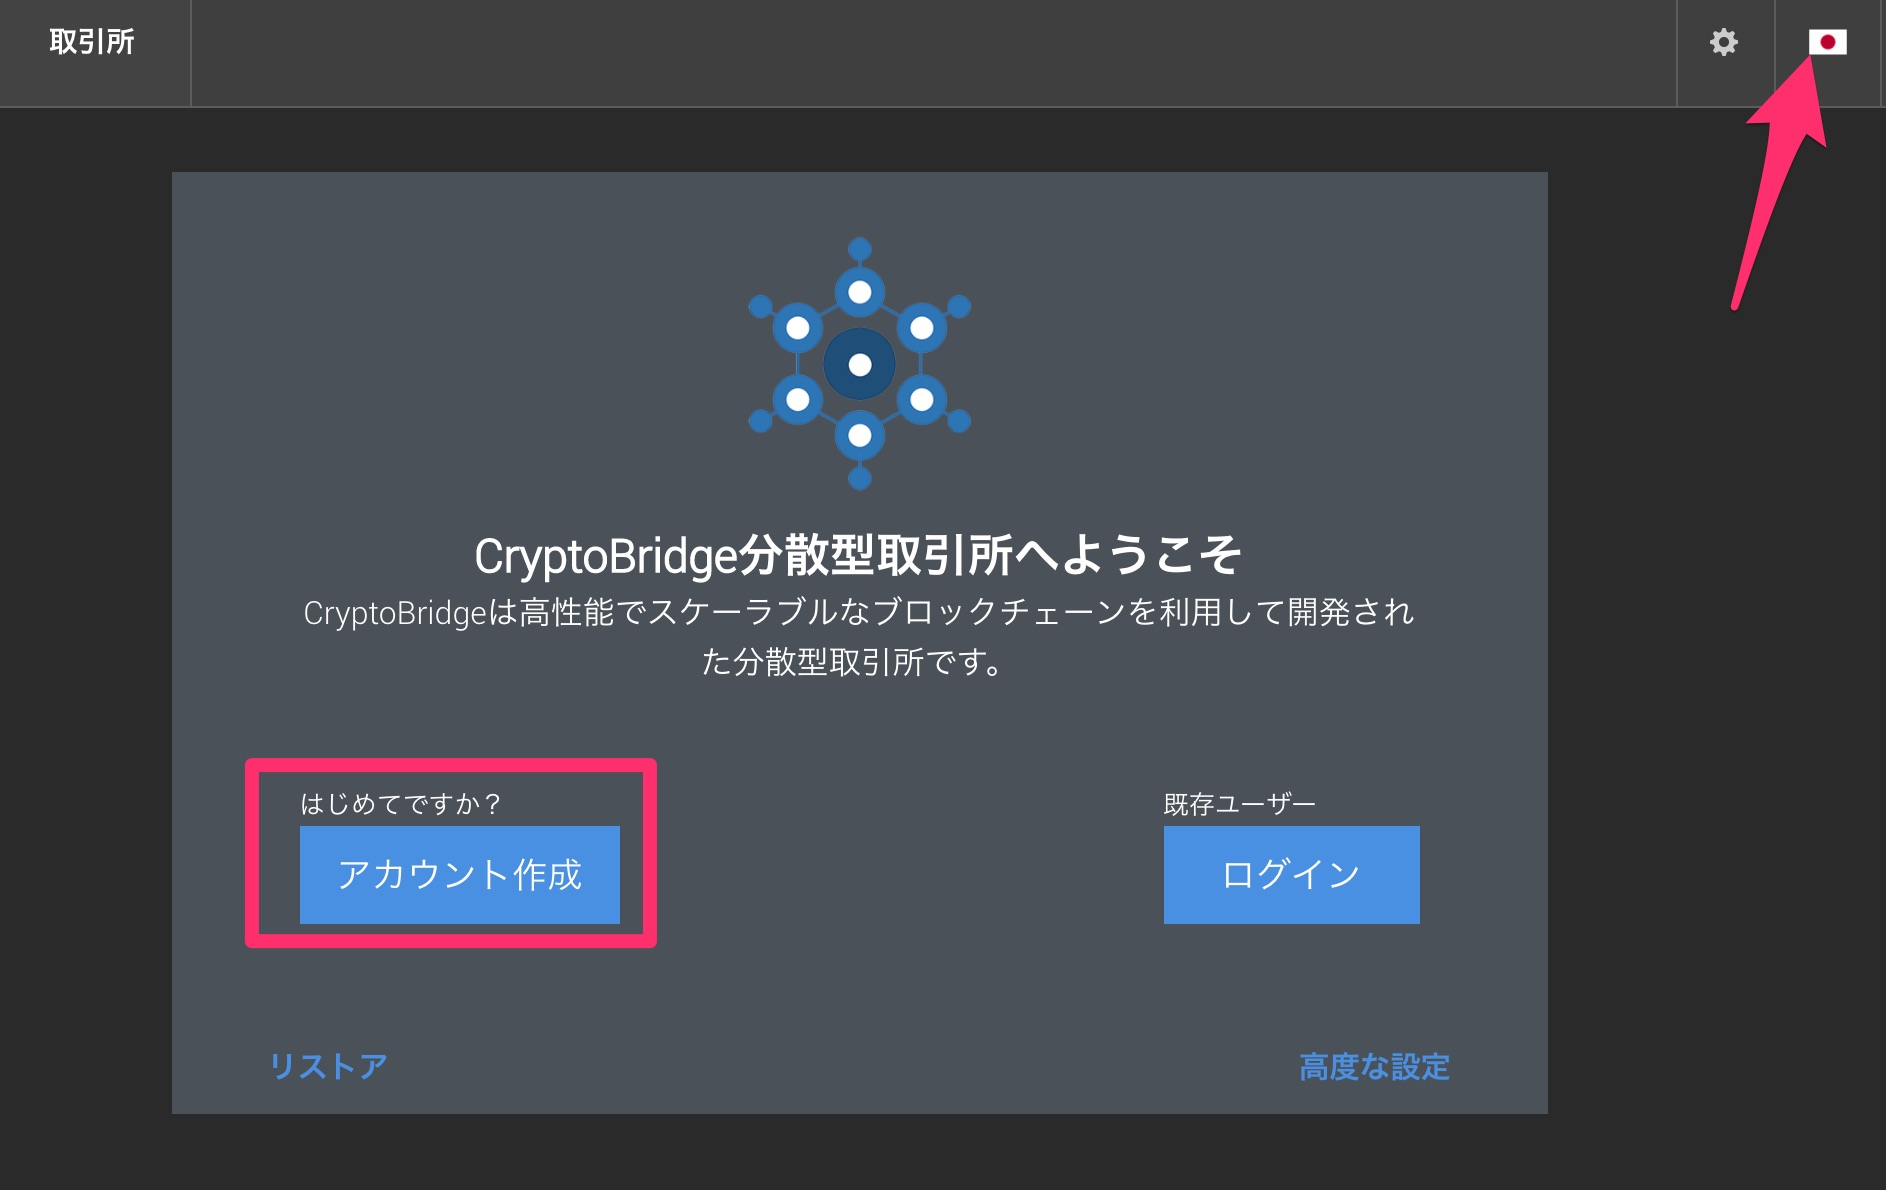 CryptoBridge decentralized exchange